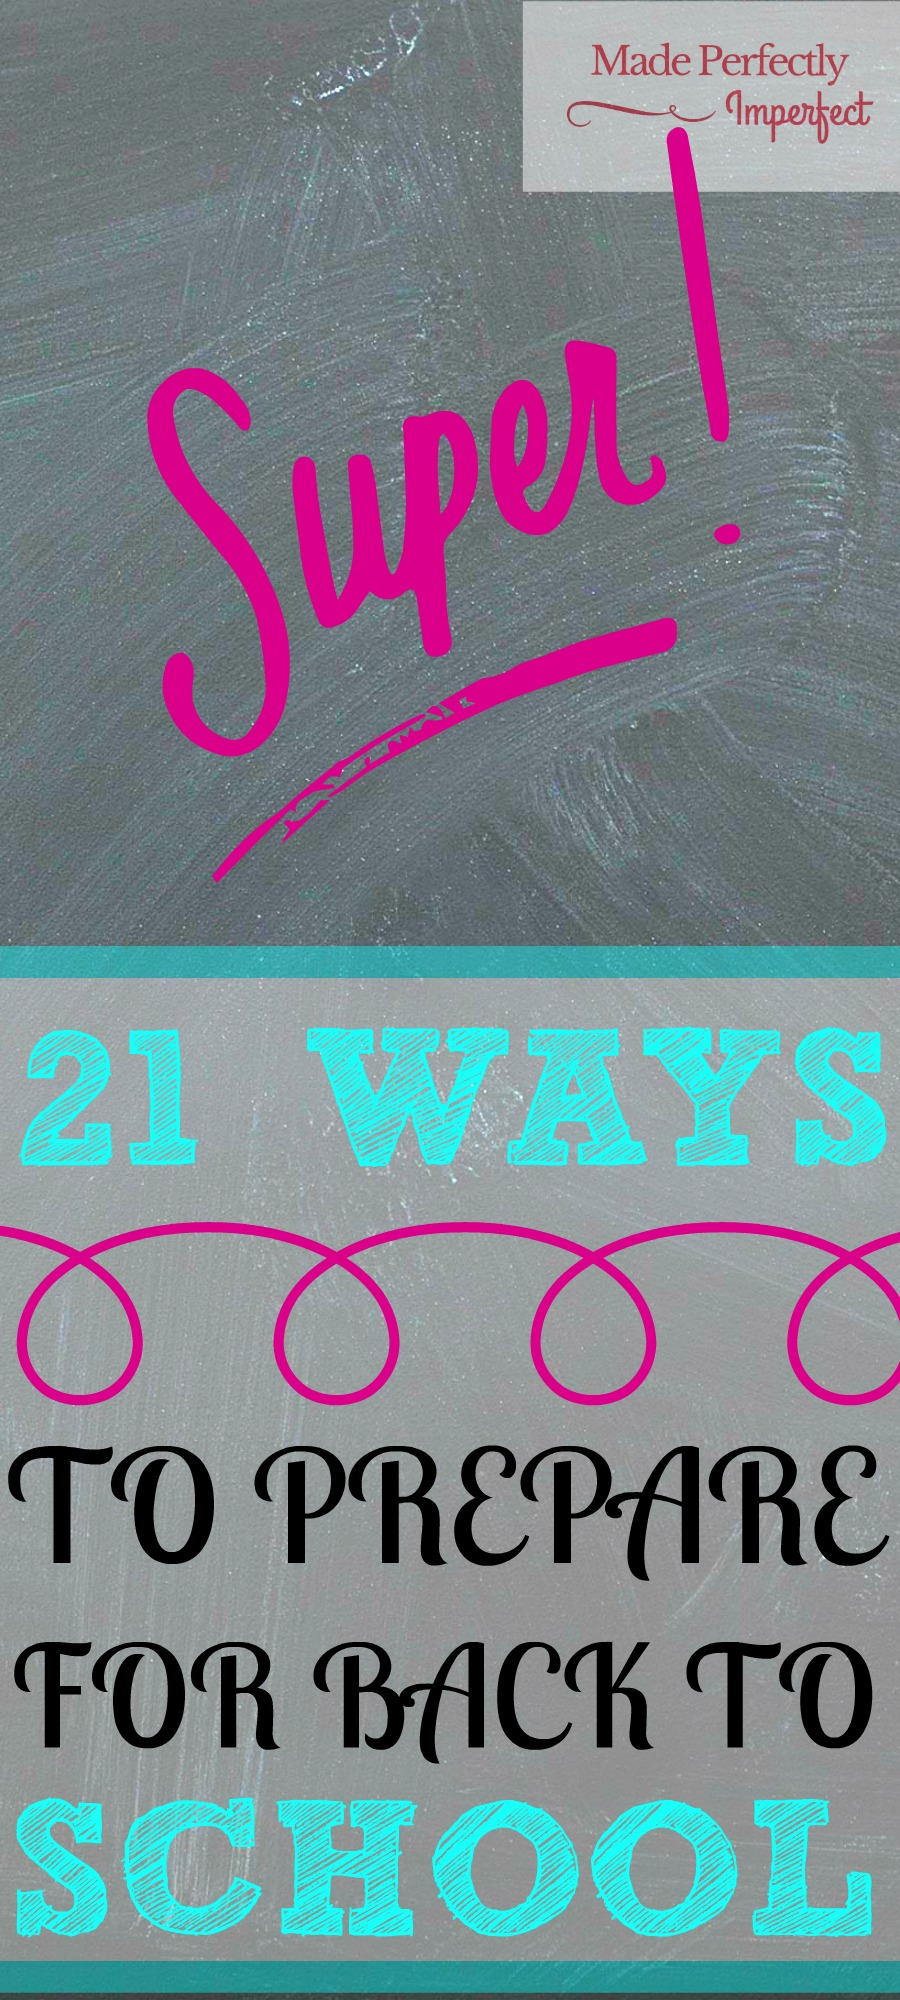 21 WAY'S TO PREPARE FOR BACK TO SCHOOL, Why wait until last minute, check out this list to get you all prepared for the big day!